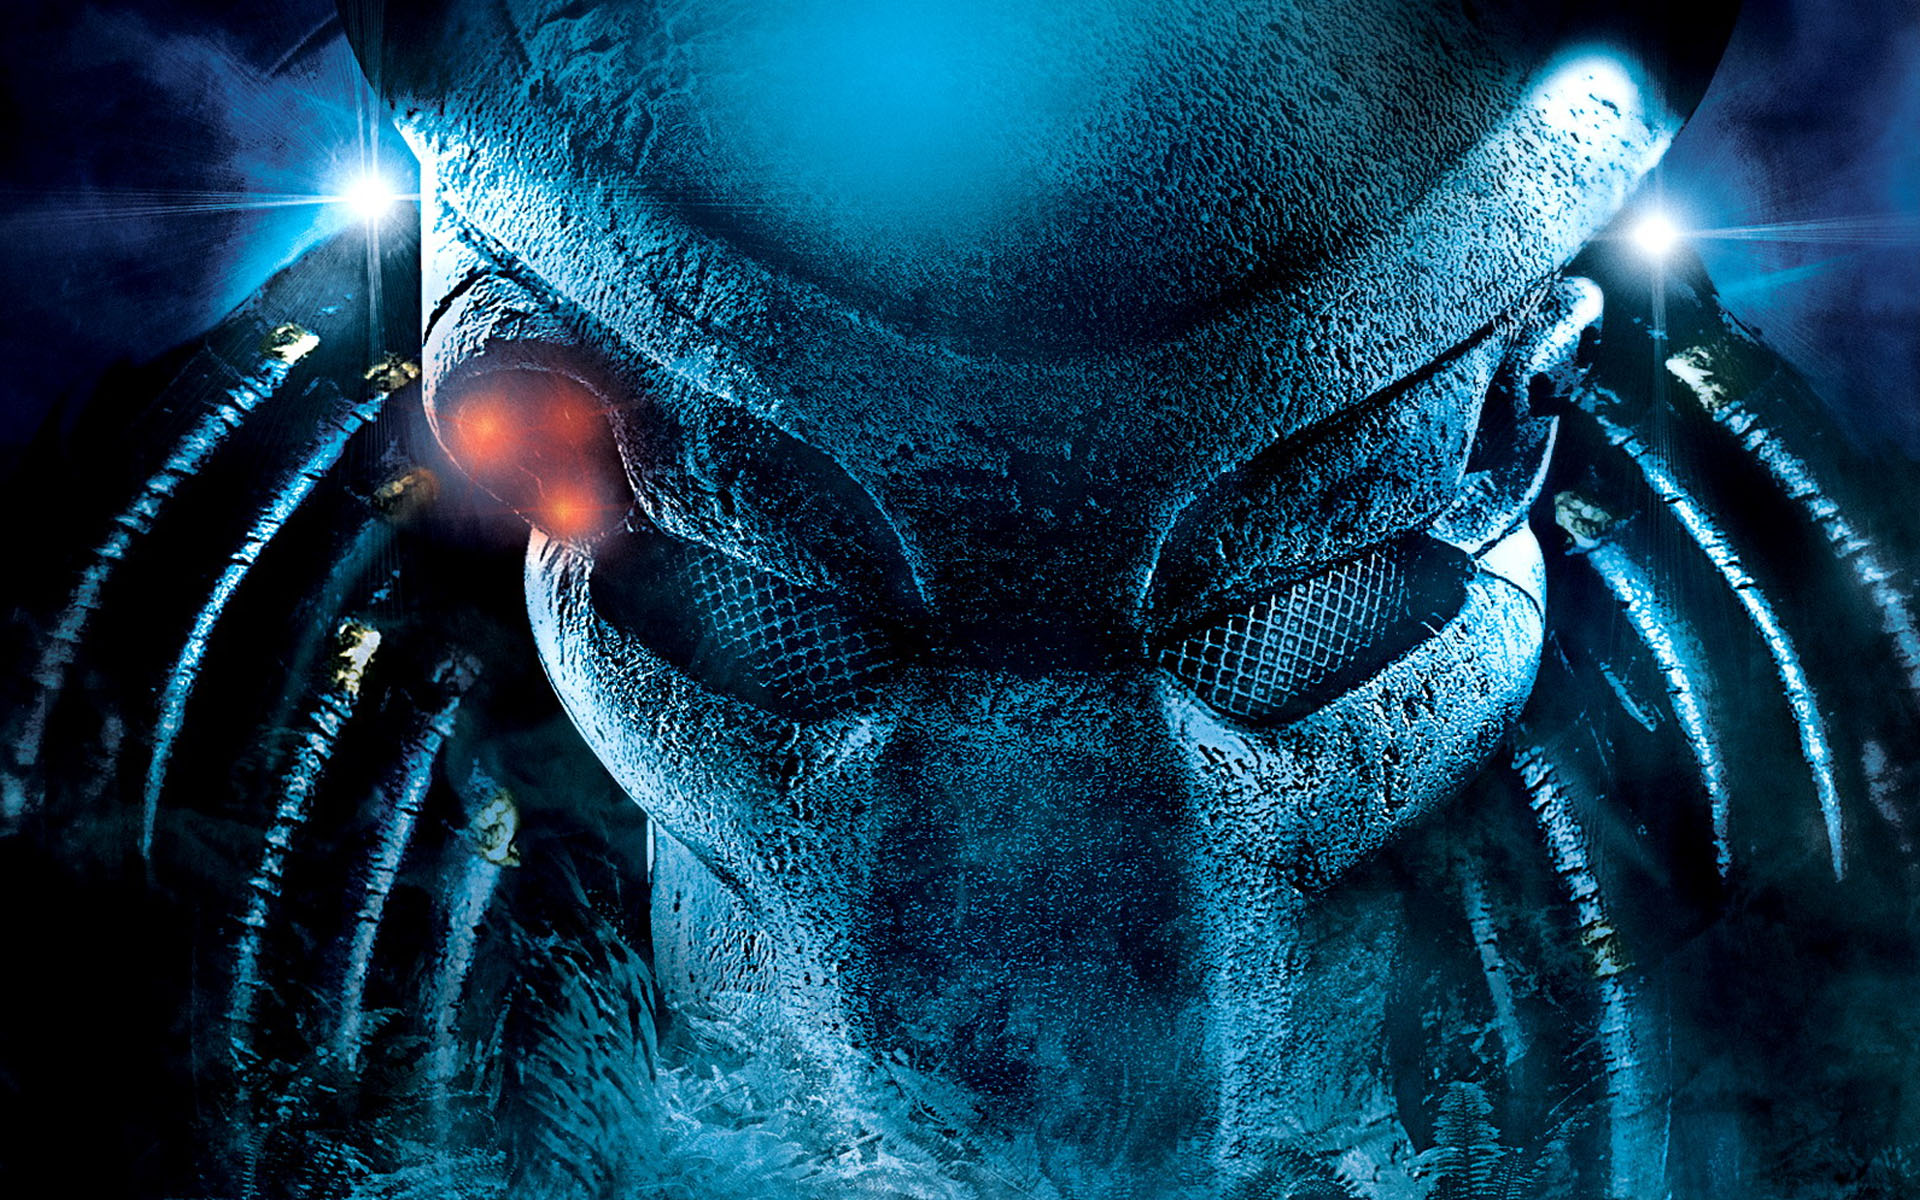 predator helmet hd wallpaper | hd latest wallpapers